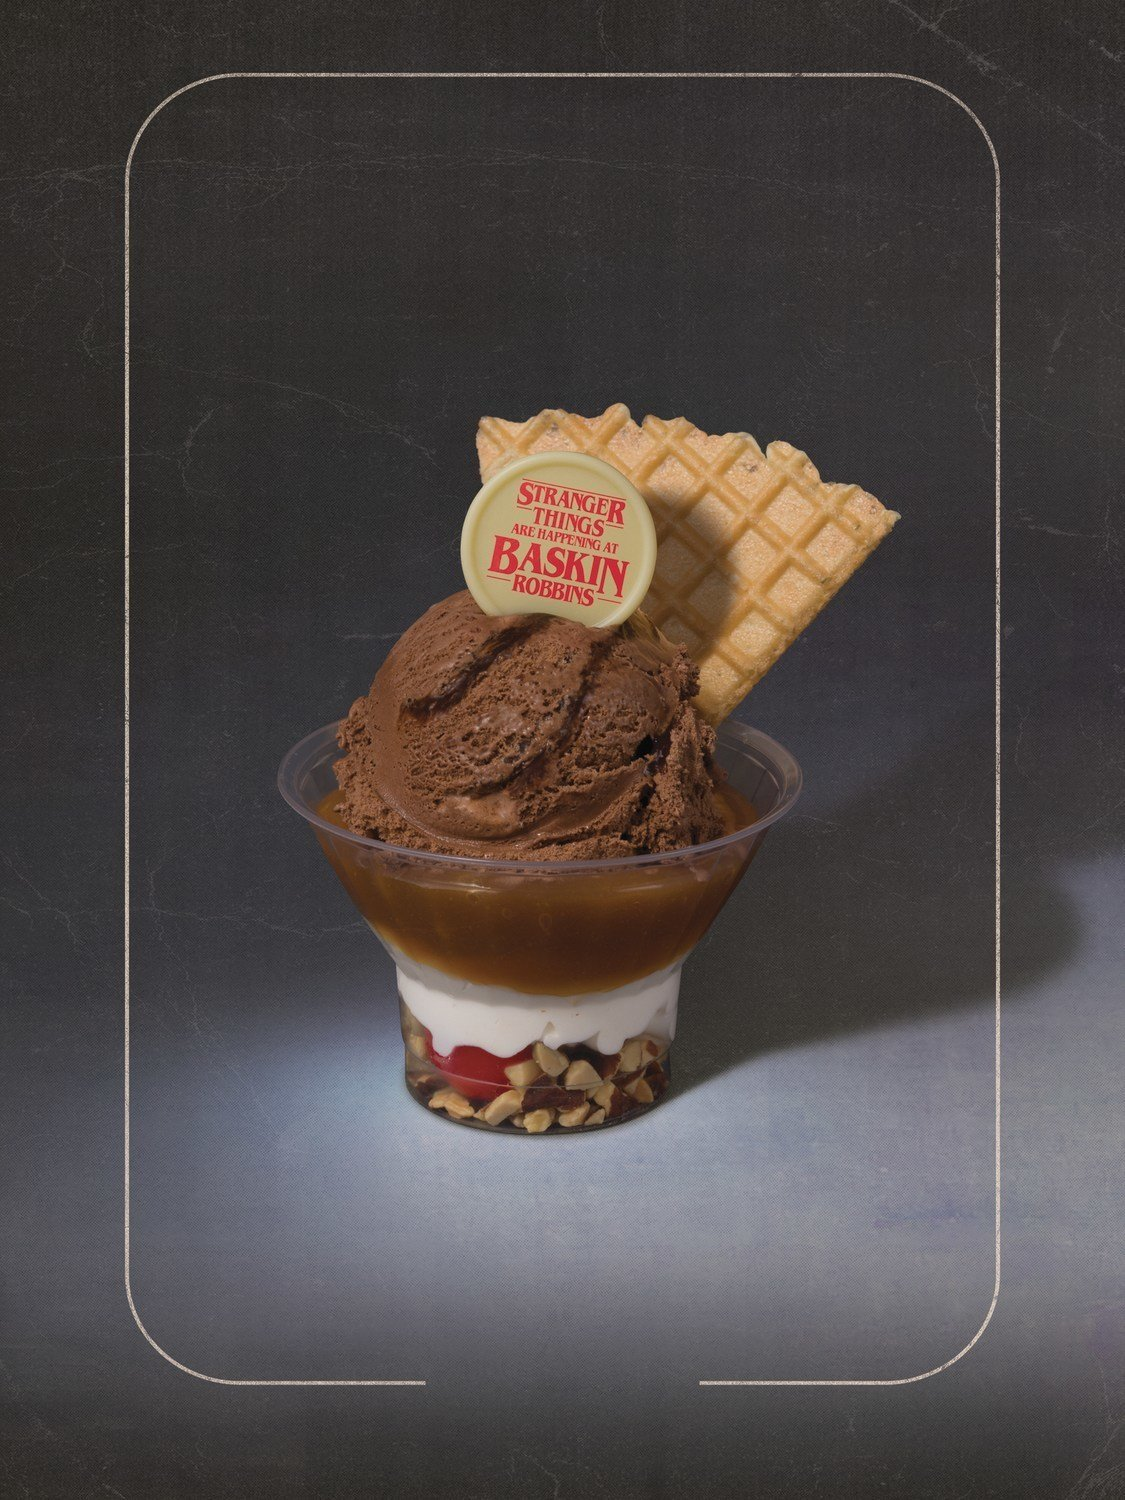 Baskin-Robbins Upside Down Sundae